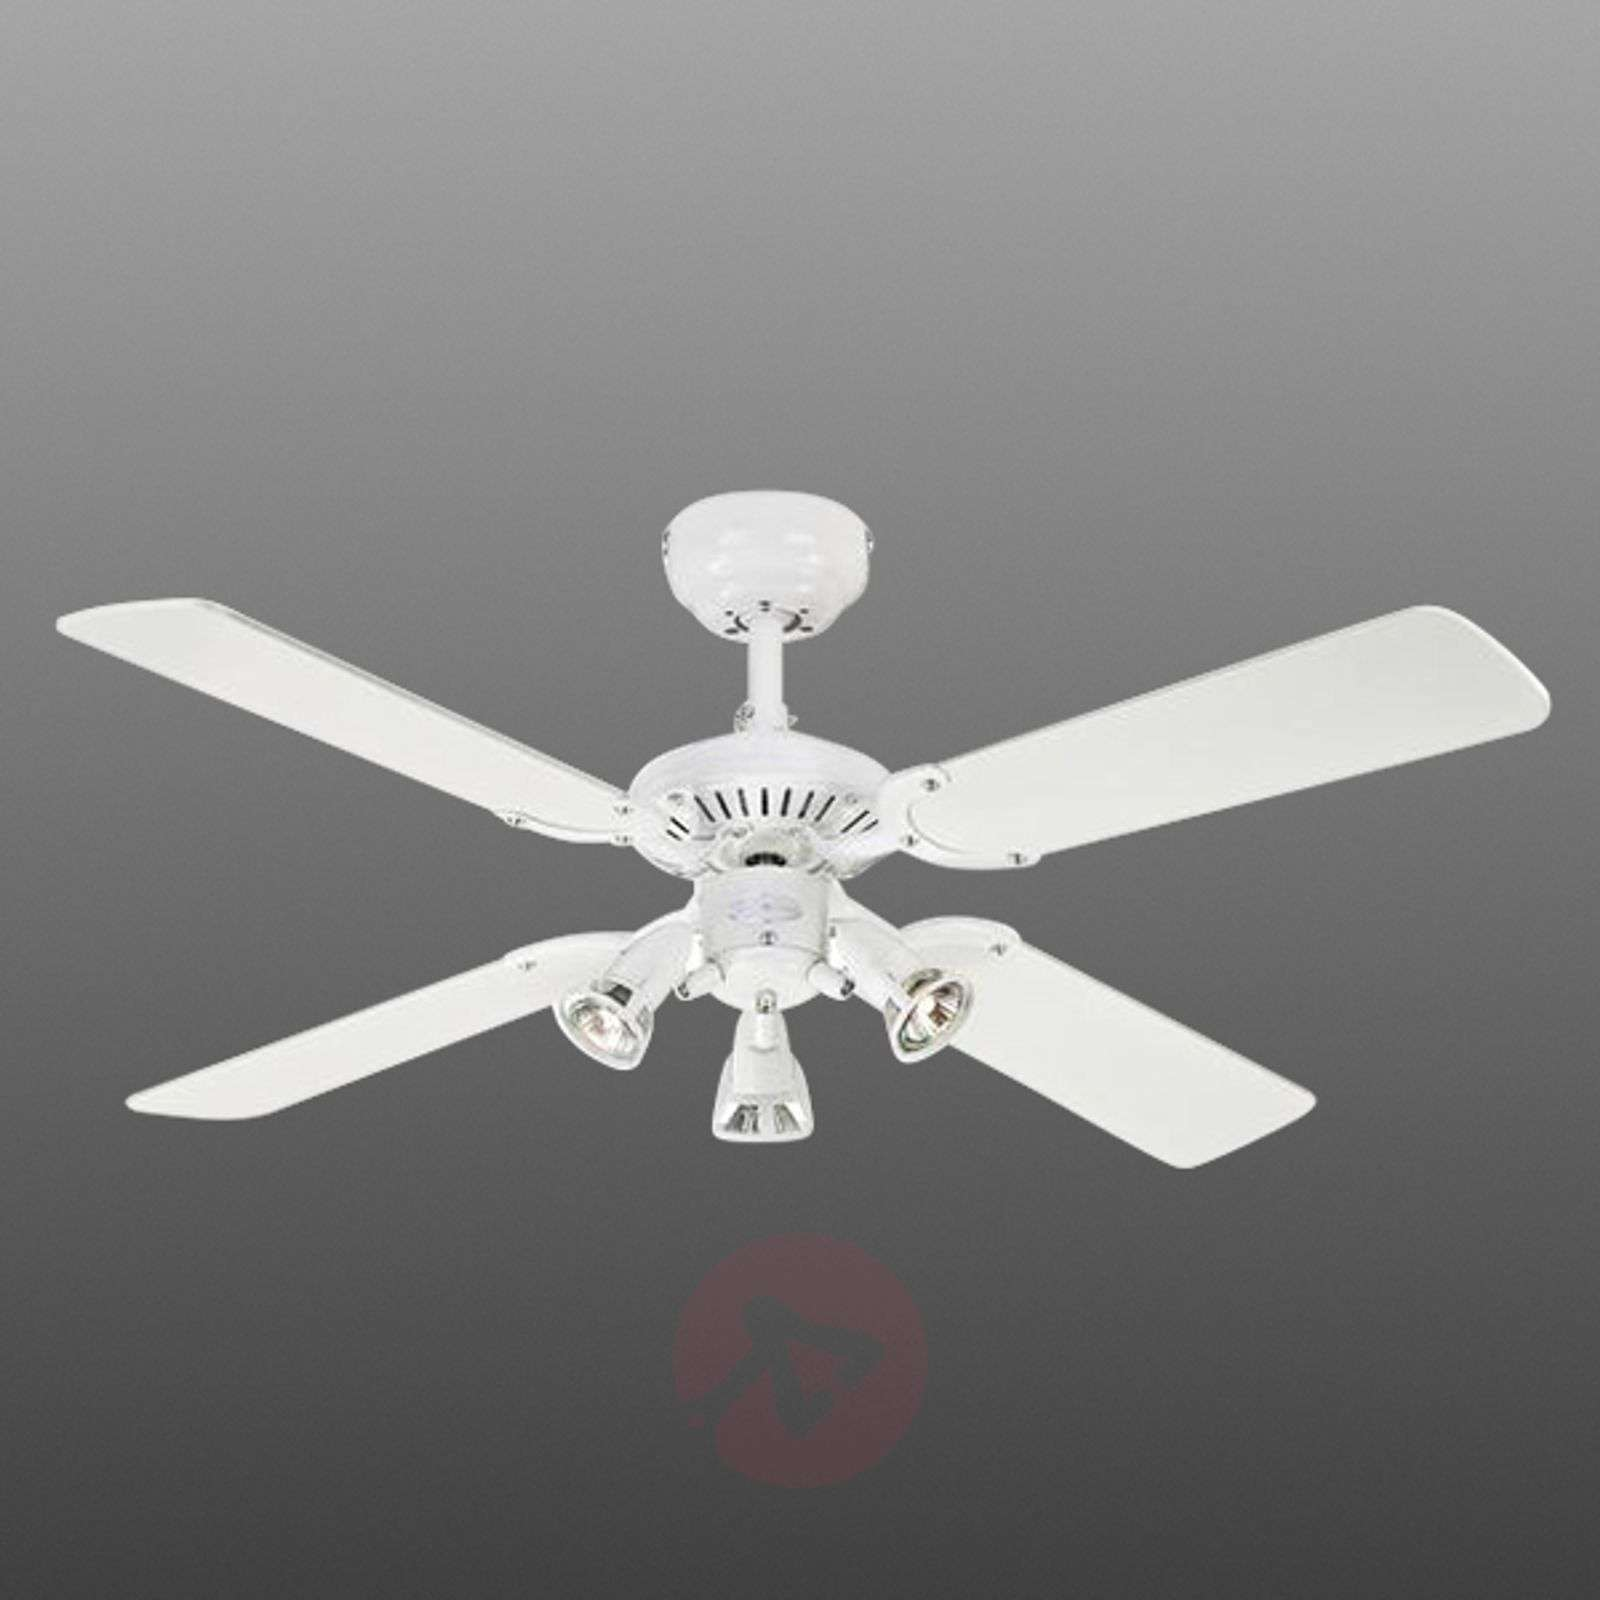 Ceiling Fan Princess Euro With 3 Bulbs 9602279 01